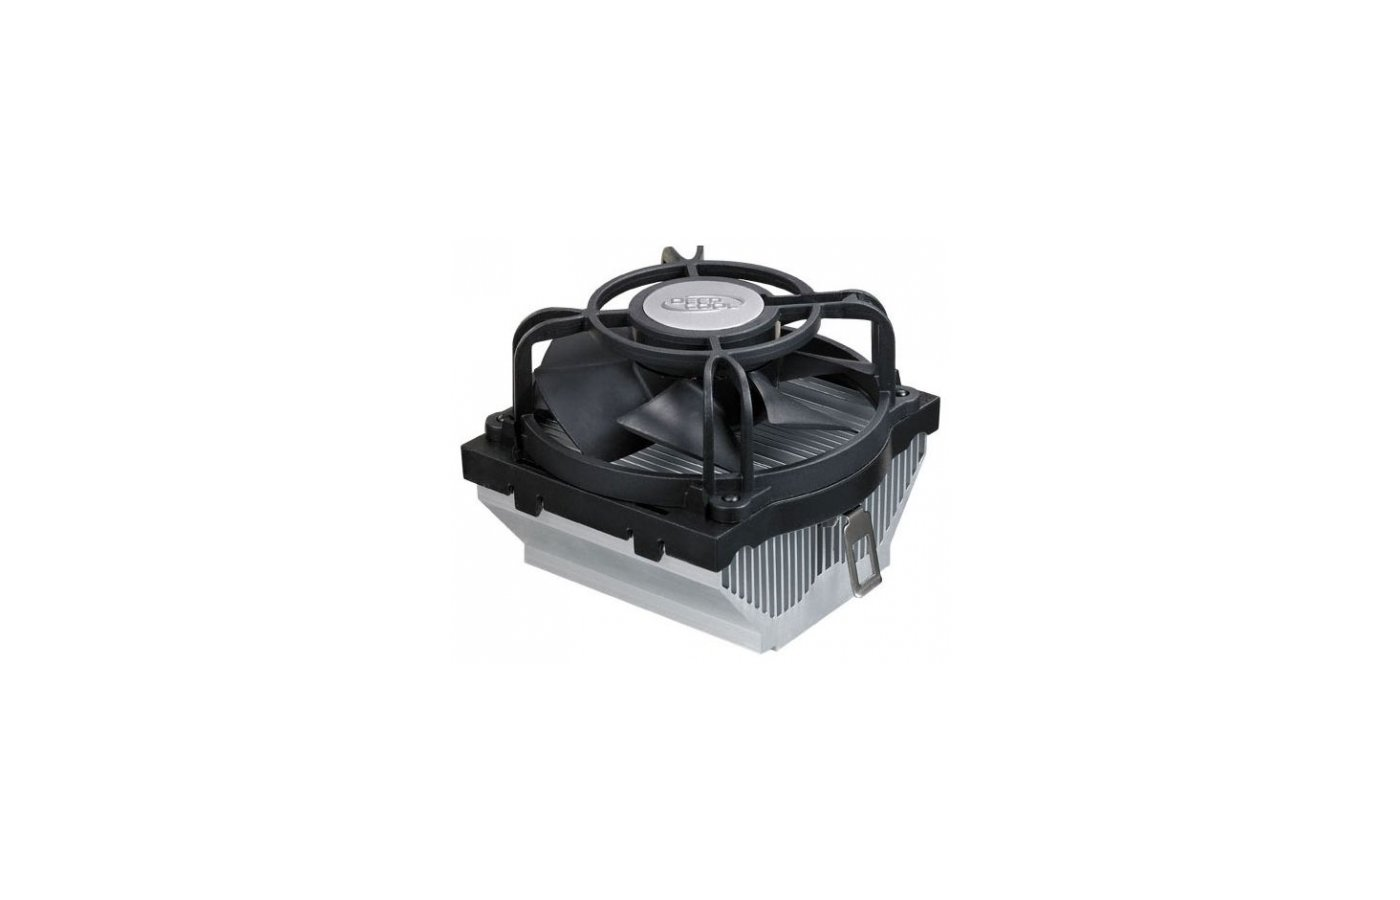 Охлаждение Deepcool BETA 10 Soc-FM2/FM1/AM3+/AM3/AM2+/AM2 3pin 25dB Al 89W 307g скоба